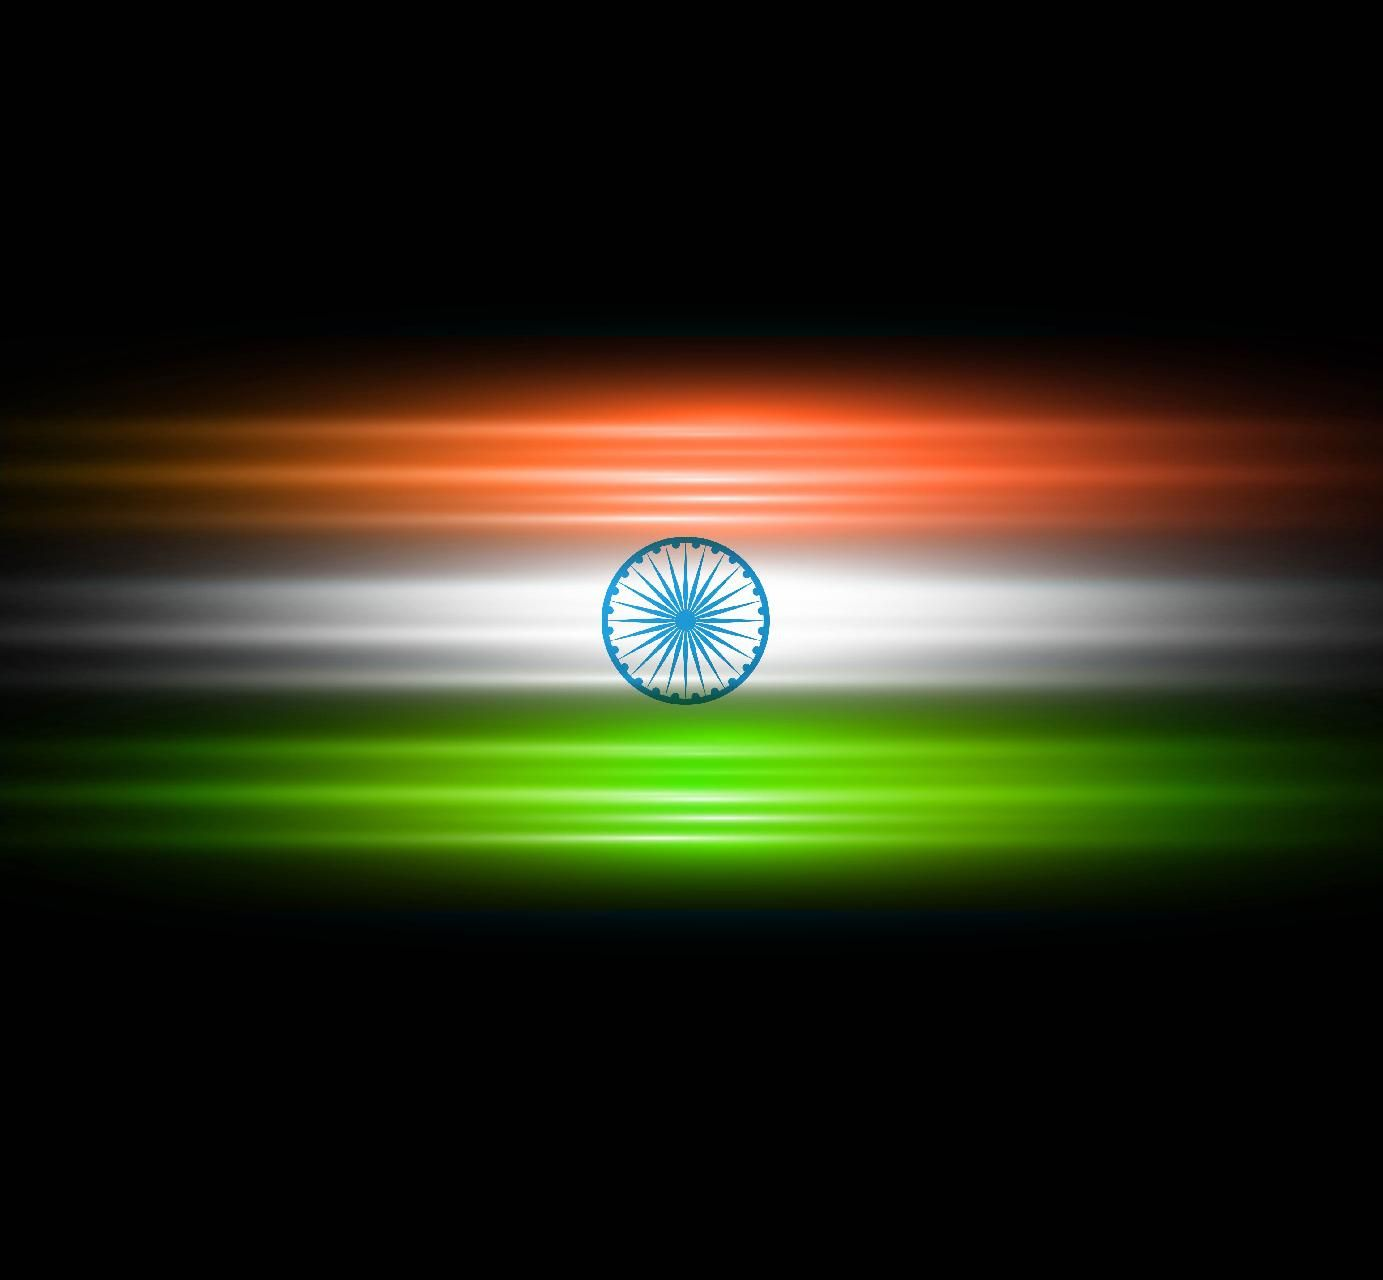 Download India Flag Wallpaper By Live1985 9a Free On Zedge Now